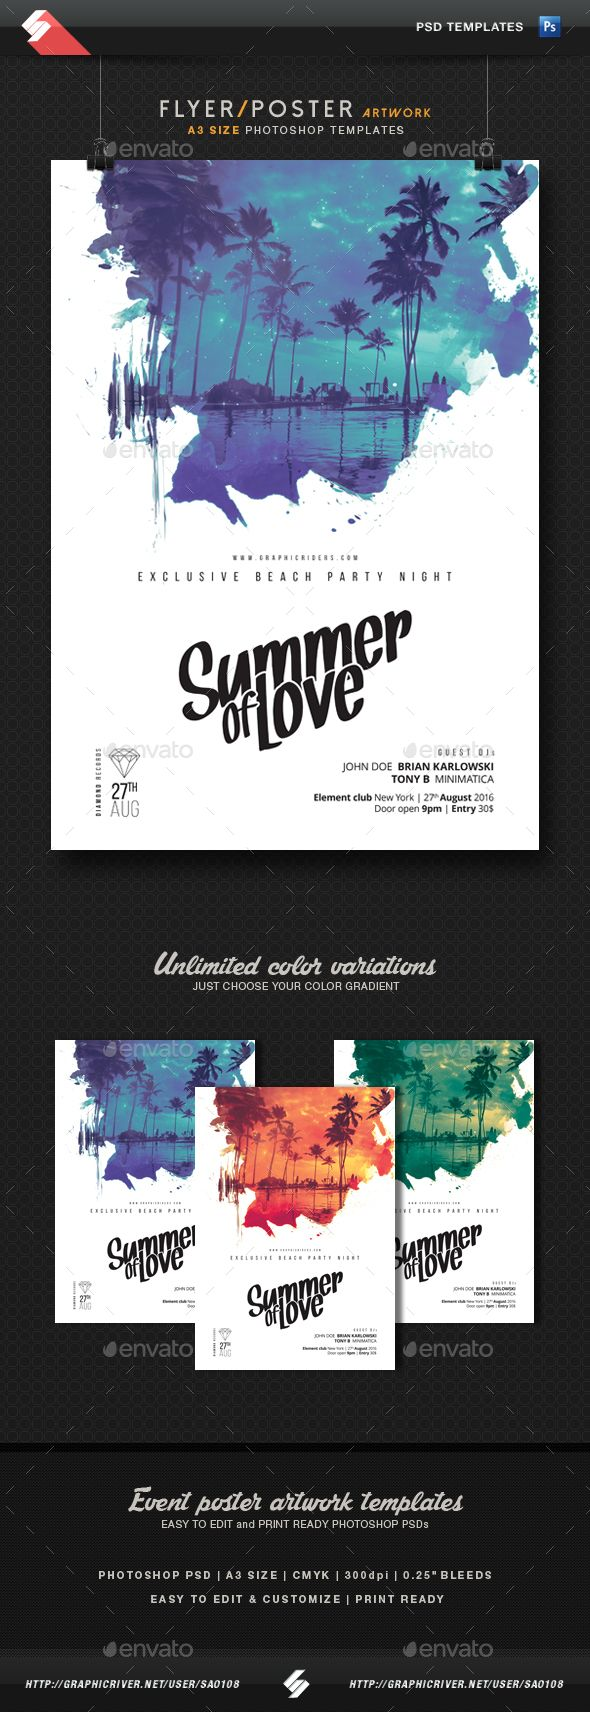 Poster design dimensions - Poster Design Dimensions Psd Summer Of Love Party Flyer Poster Template A3 Only Available Here